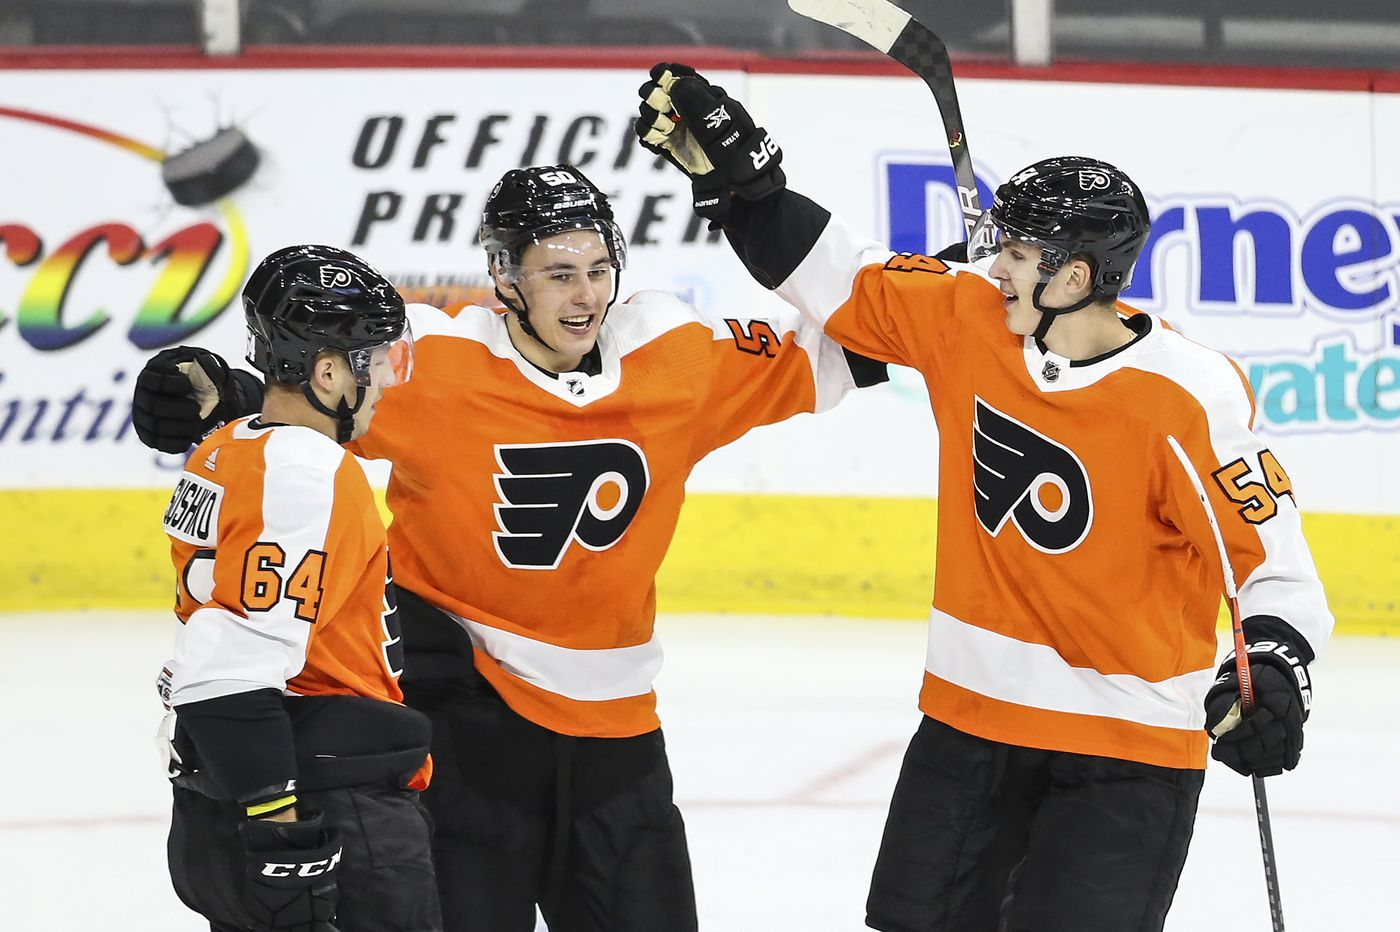 German Rubtsov becomes fourth Flyers player to make his NHL debut this season